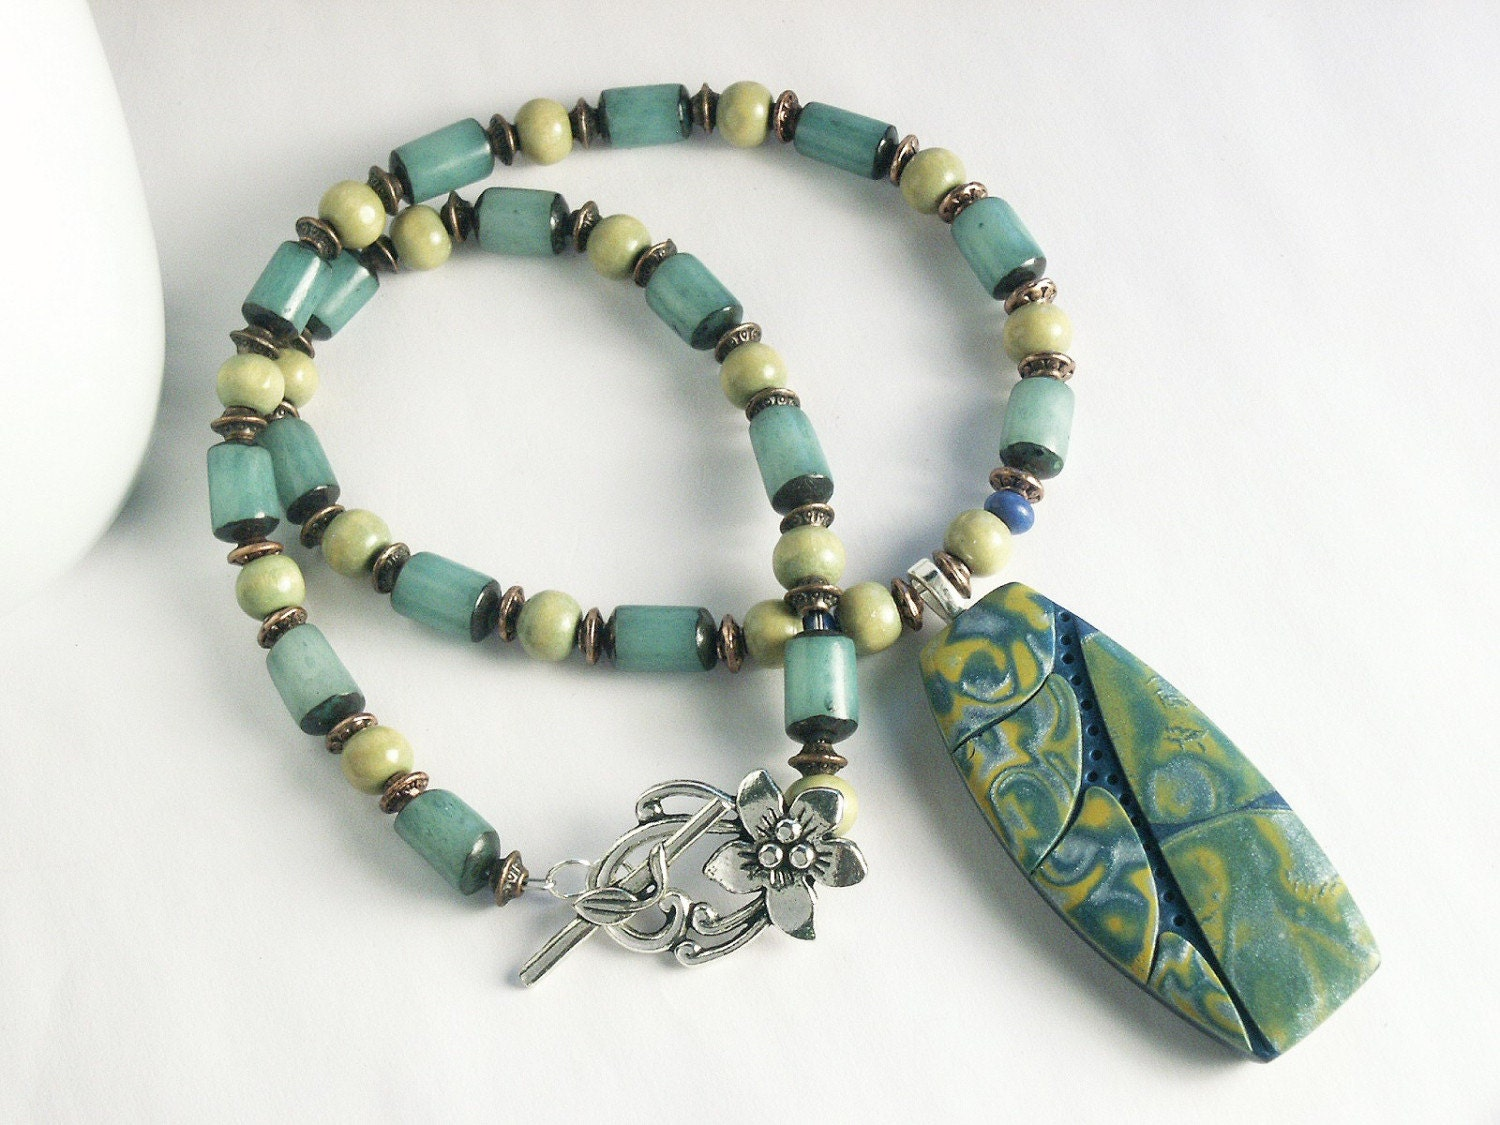 Handmade Beaded Necklace featuring Polymer Clay Pendant in Tropical Leaf Design